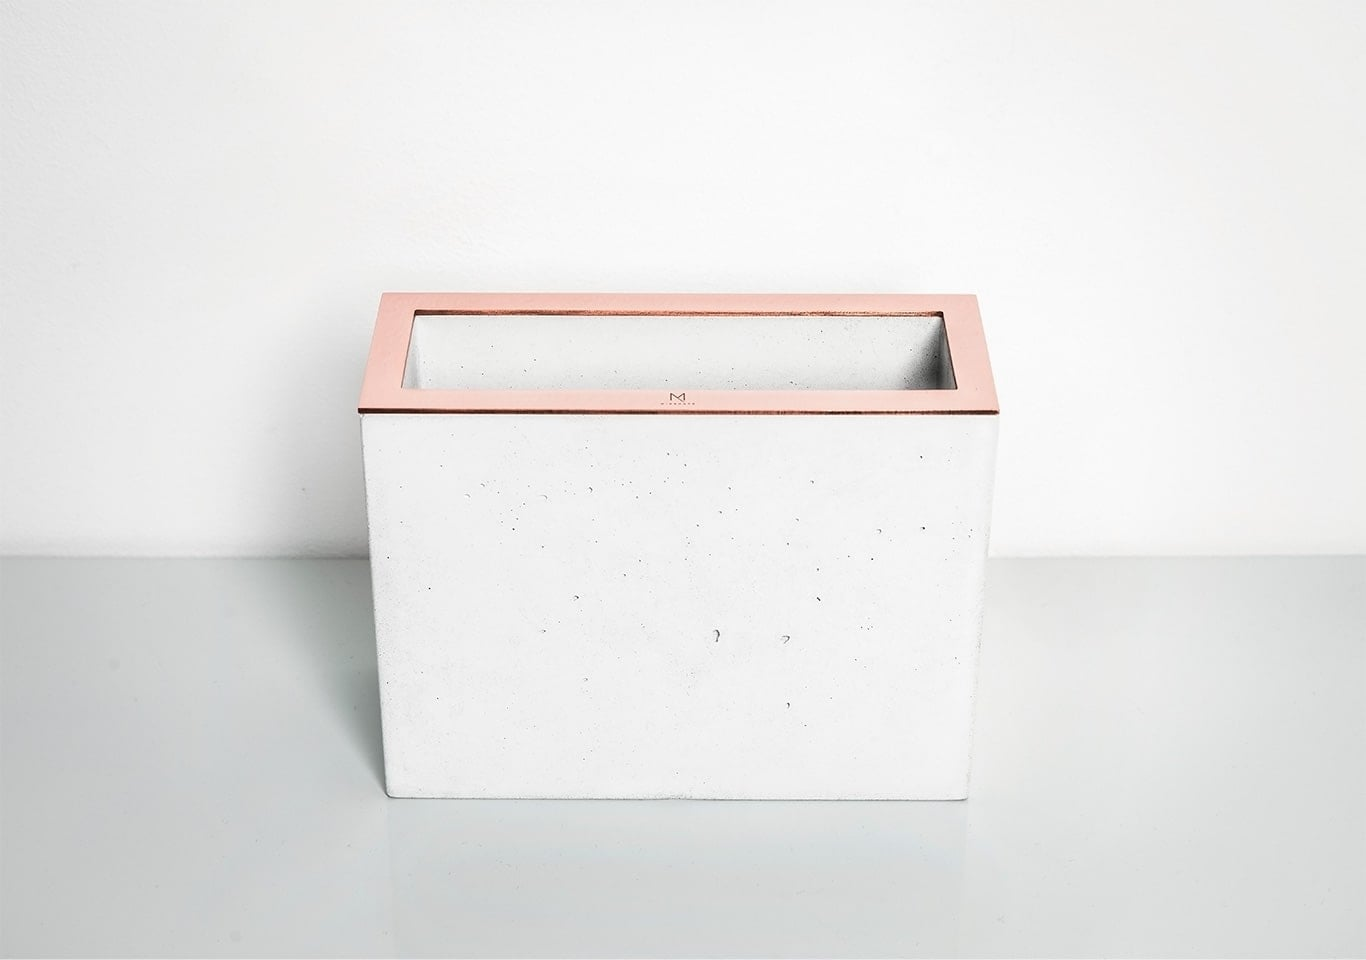 White Rectangular Concrete Vase by Minshape — MV2.2